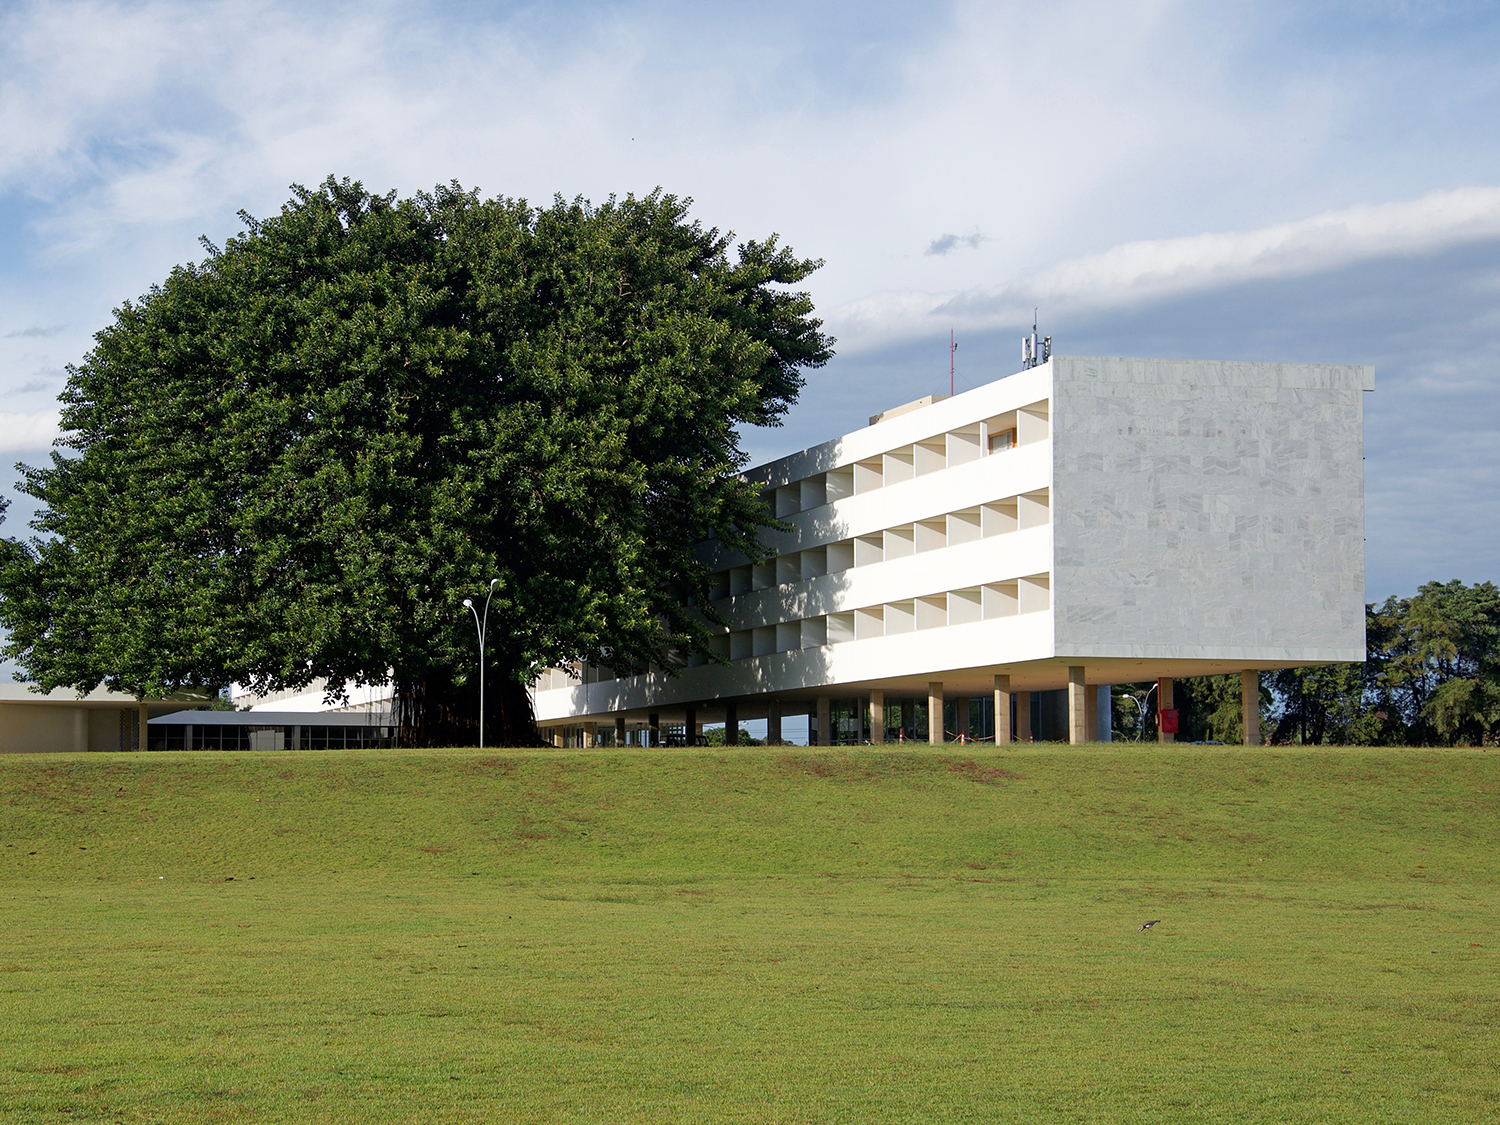 9c7b0e31c6ef7b Older than the tree  The Brasília Palace Hotel by Oscar Niemeyer was  completed in 1956 and has hosted guests such as Che Guevara ever since.